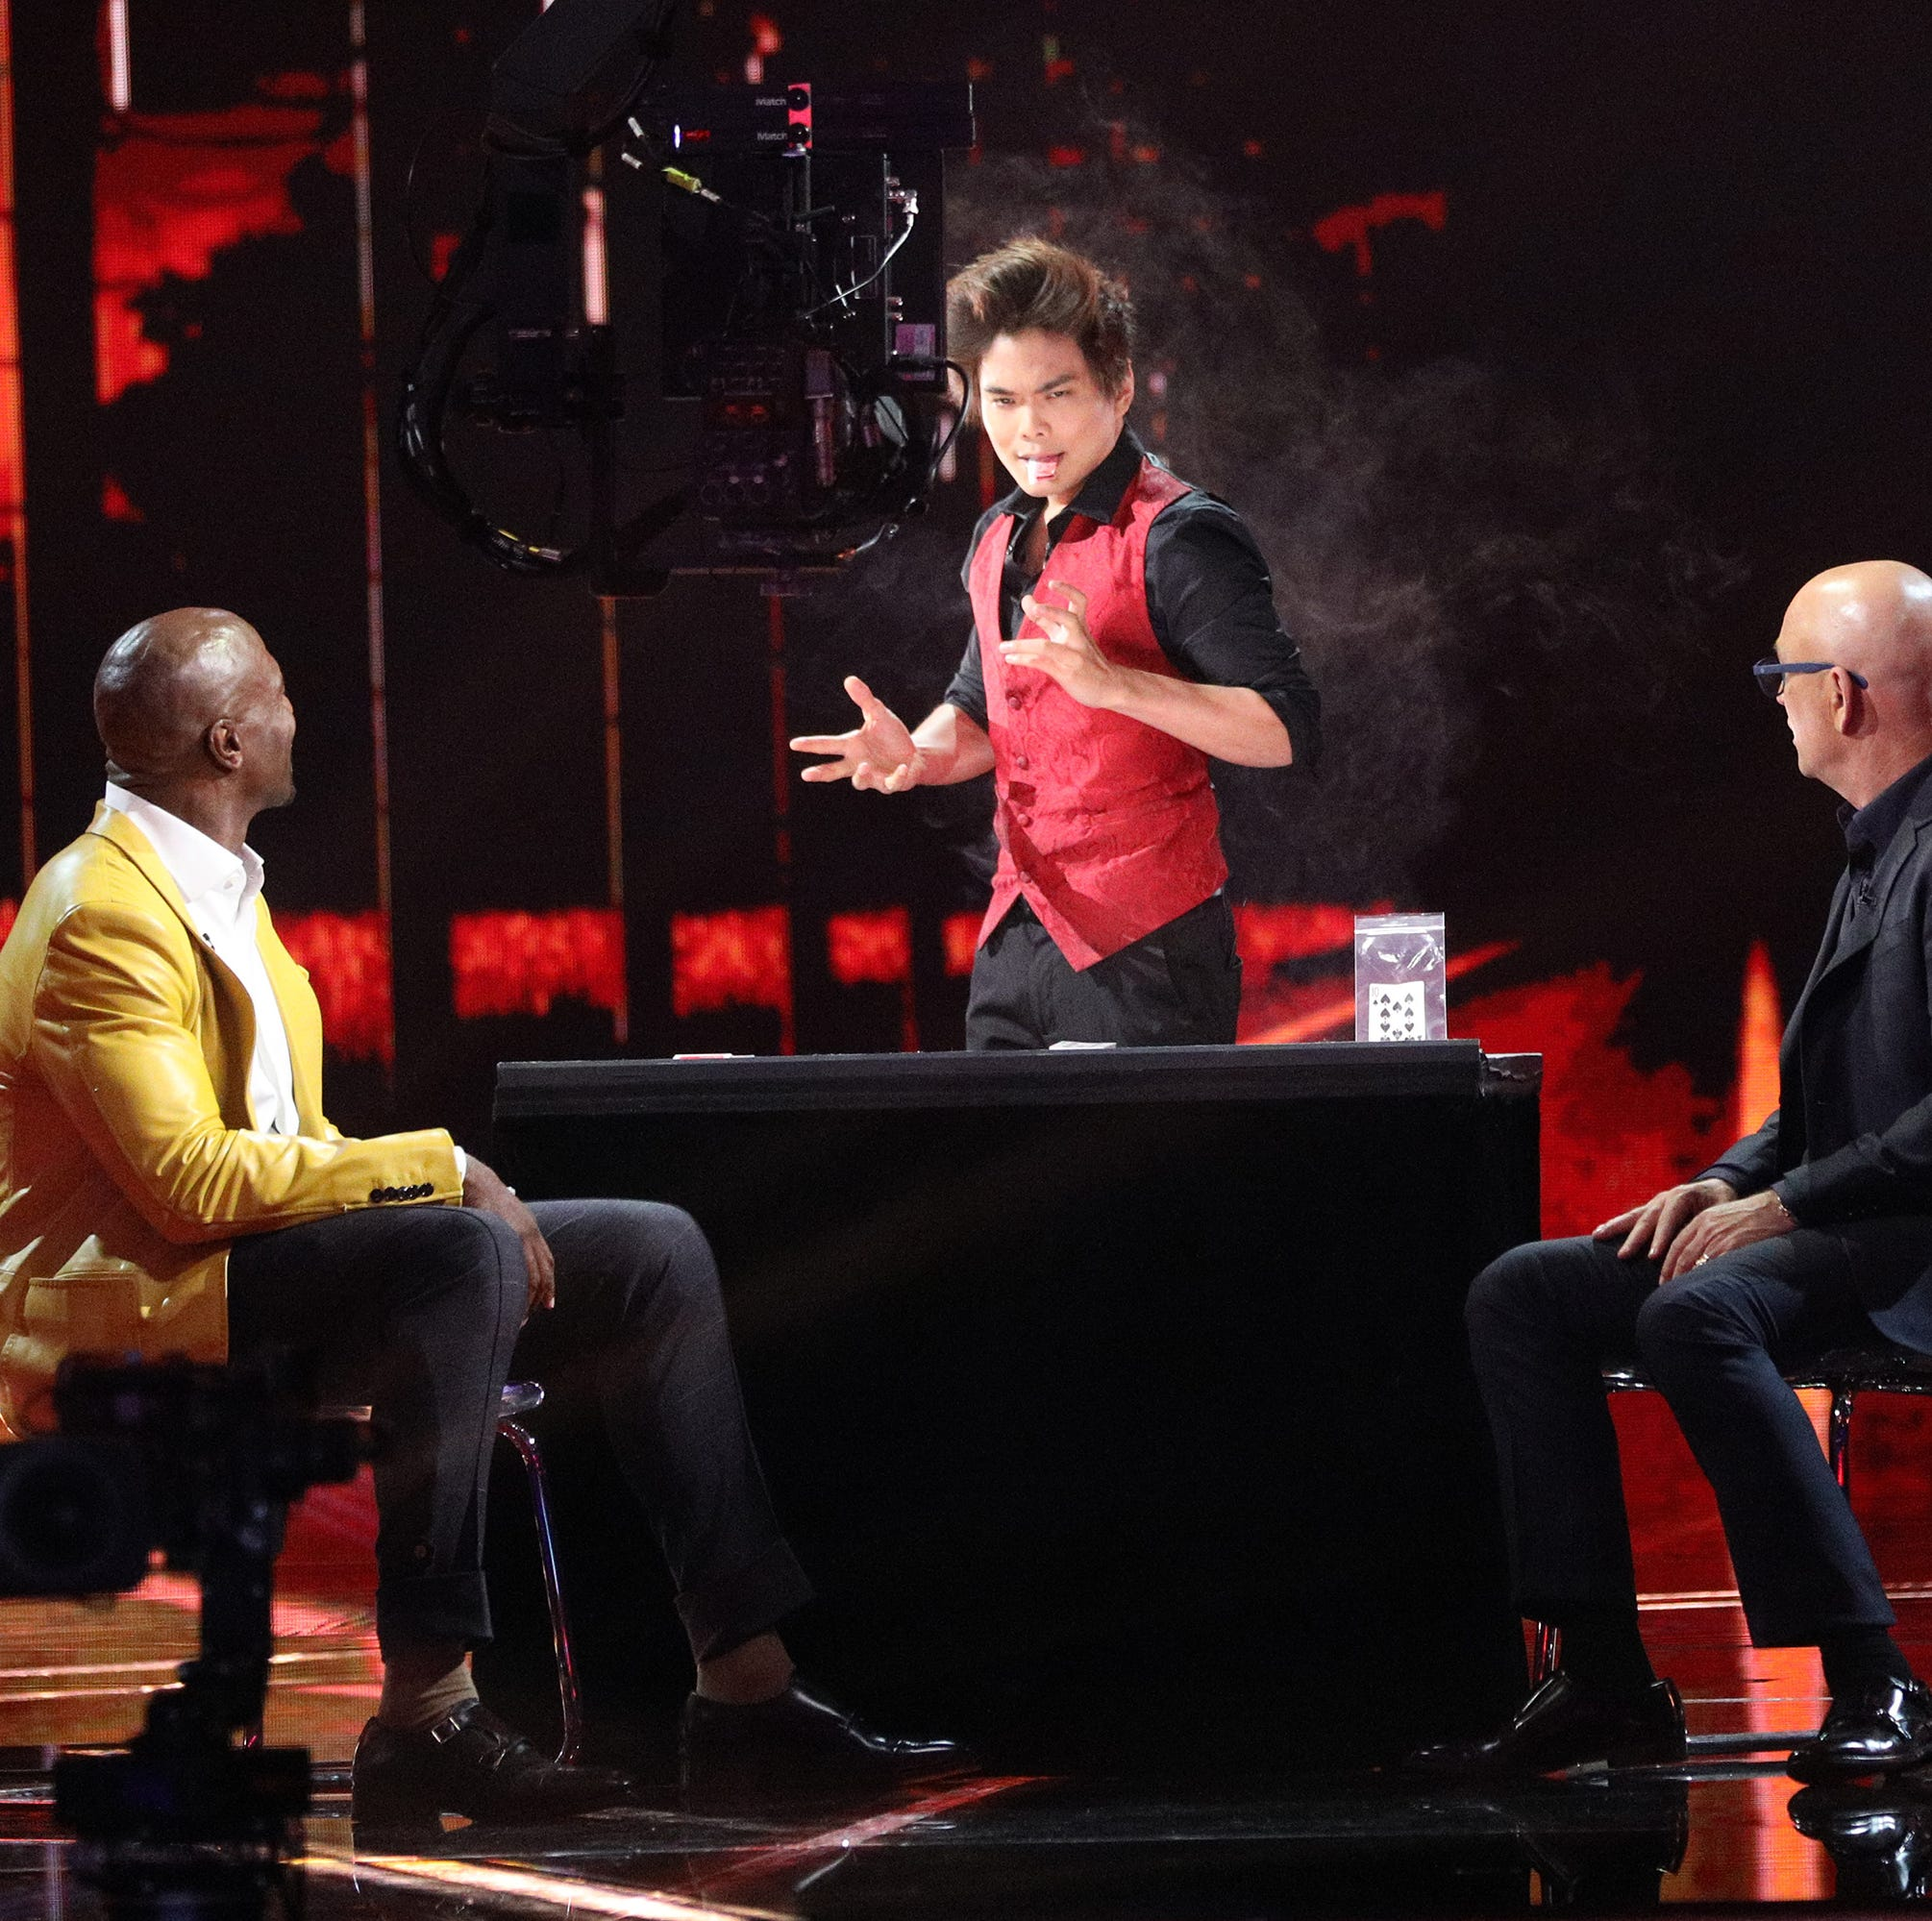 Shin Lim, seen performing in the 'America's Got Talent: The Champions' finals in front of host Terry Crews, left, and judge Howie Mandel, won the special 'AGT' edition Monday.